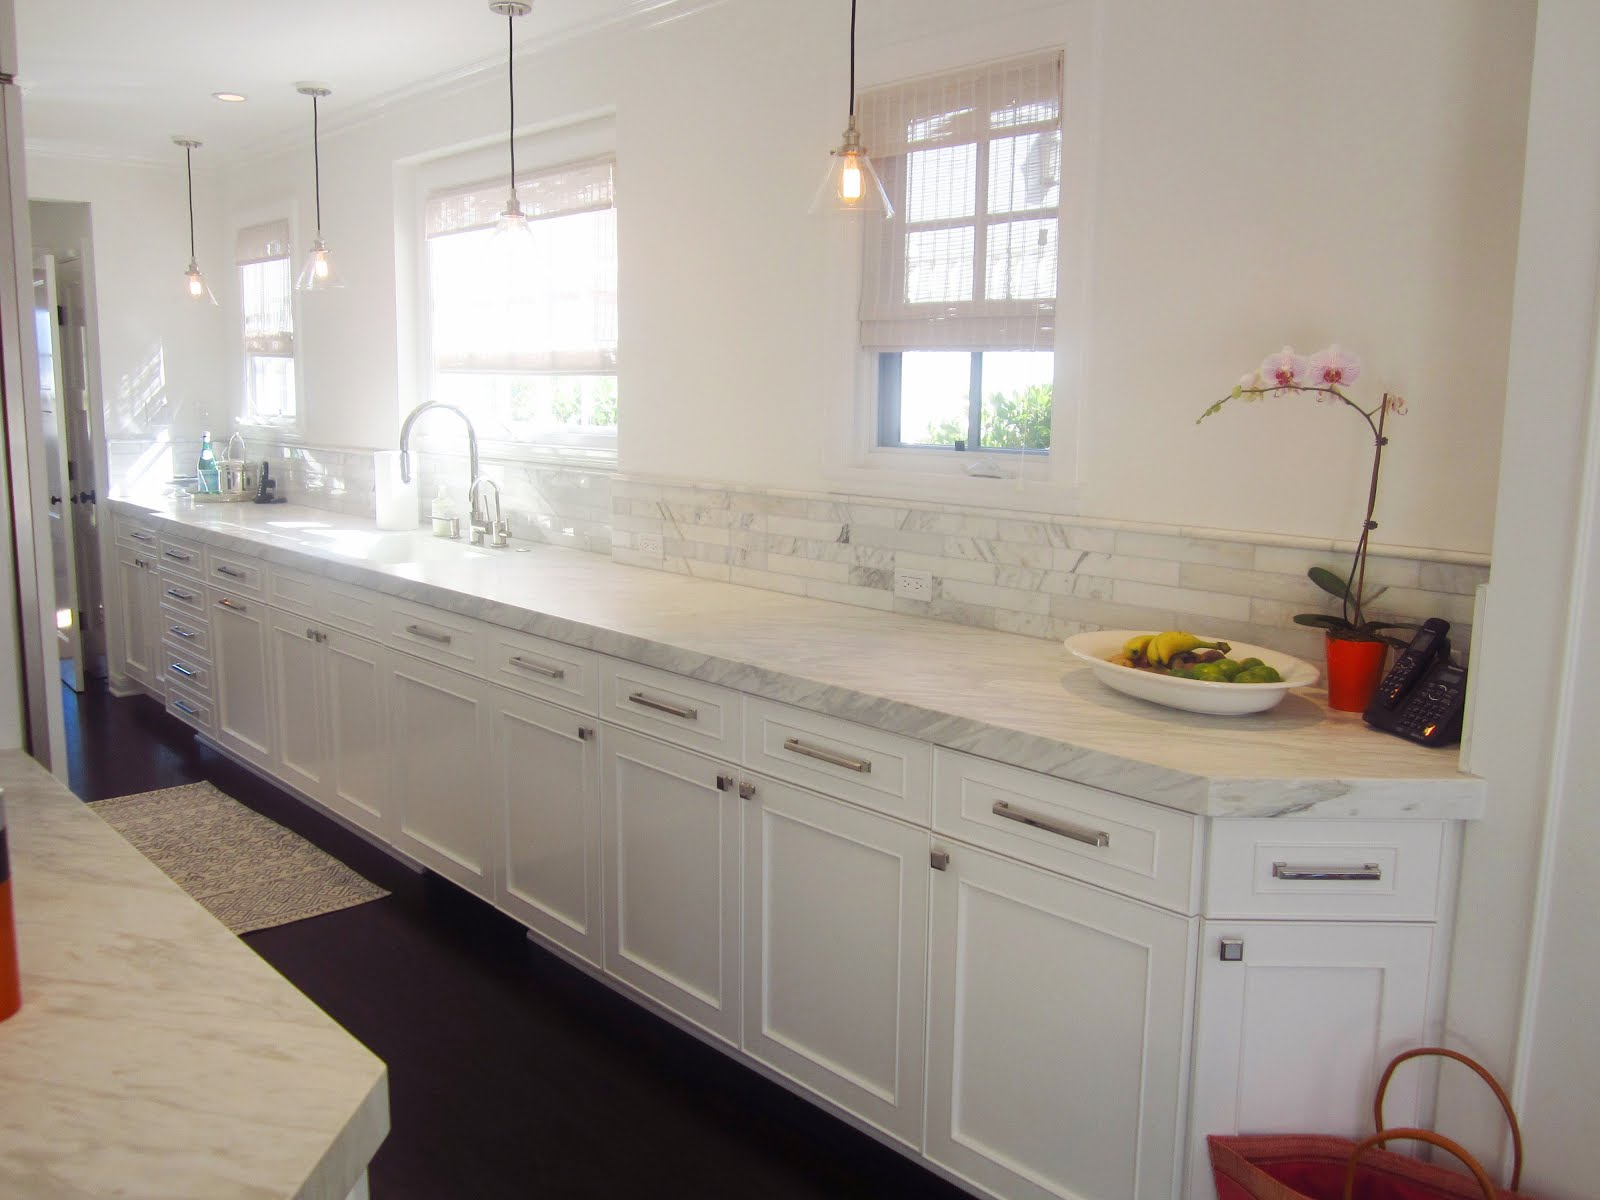 Cococozy exclusive a chic galley kitchen cococozy for Kitchen design ideas white cabinets